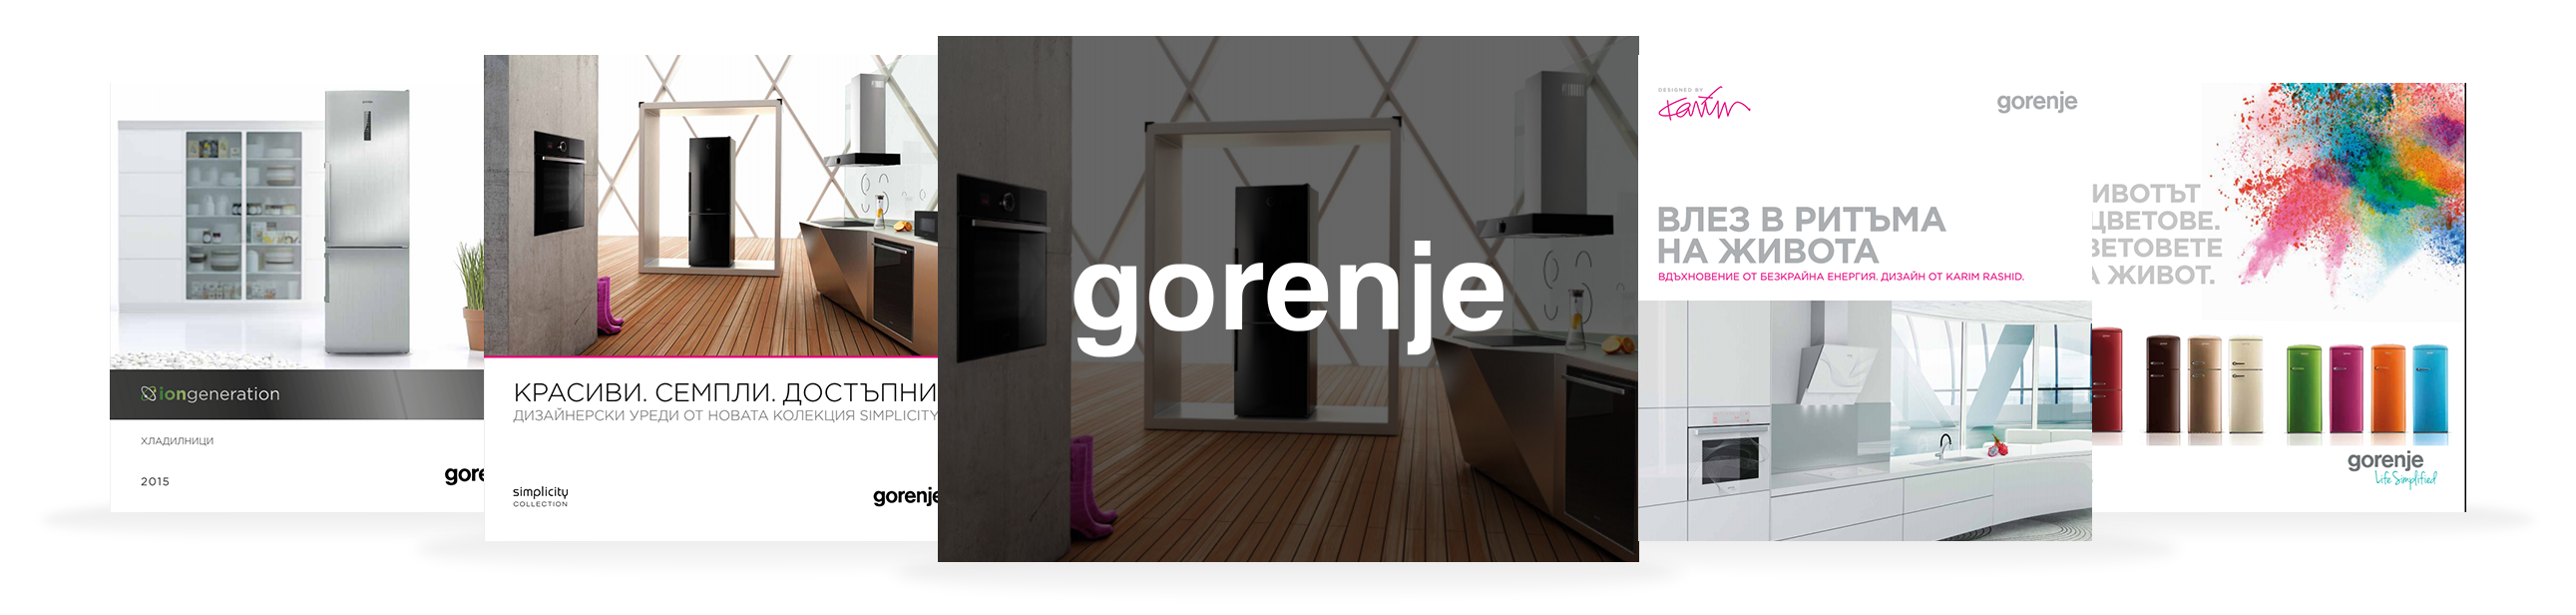 Gorenje Project Pictures